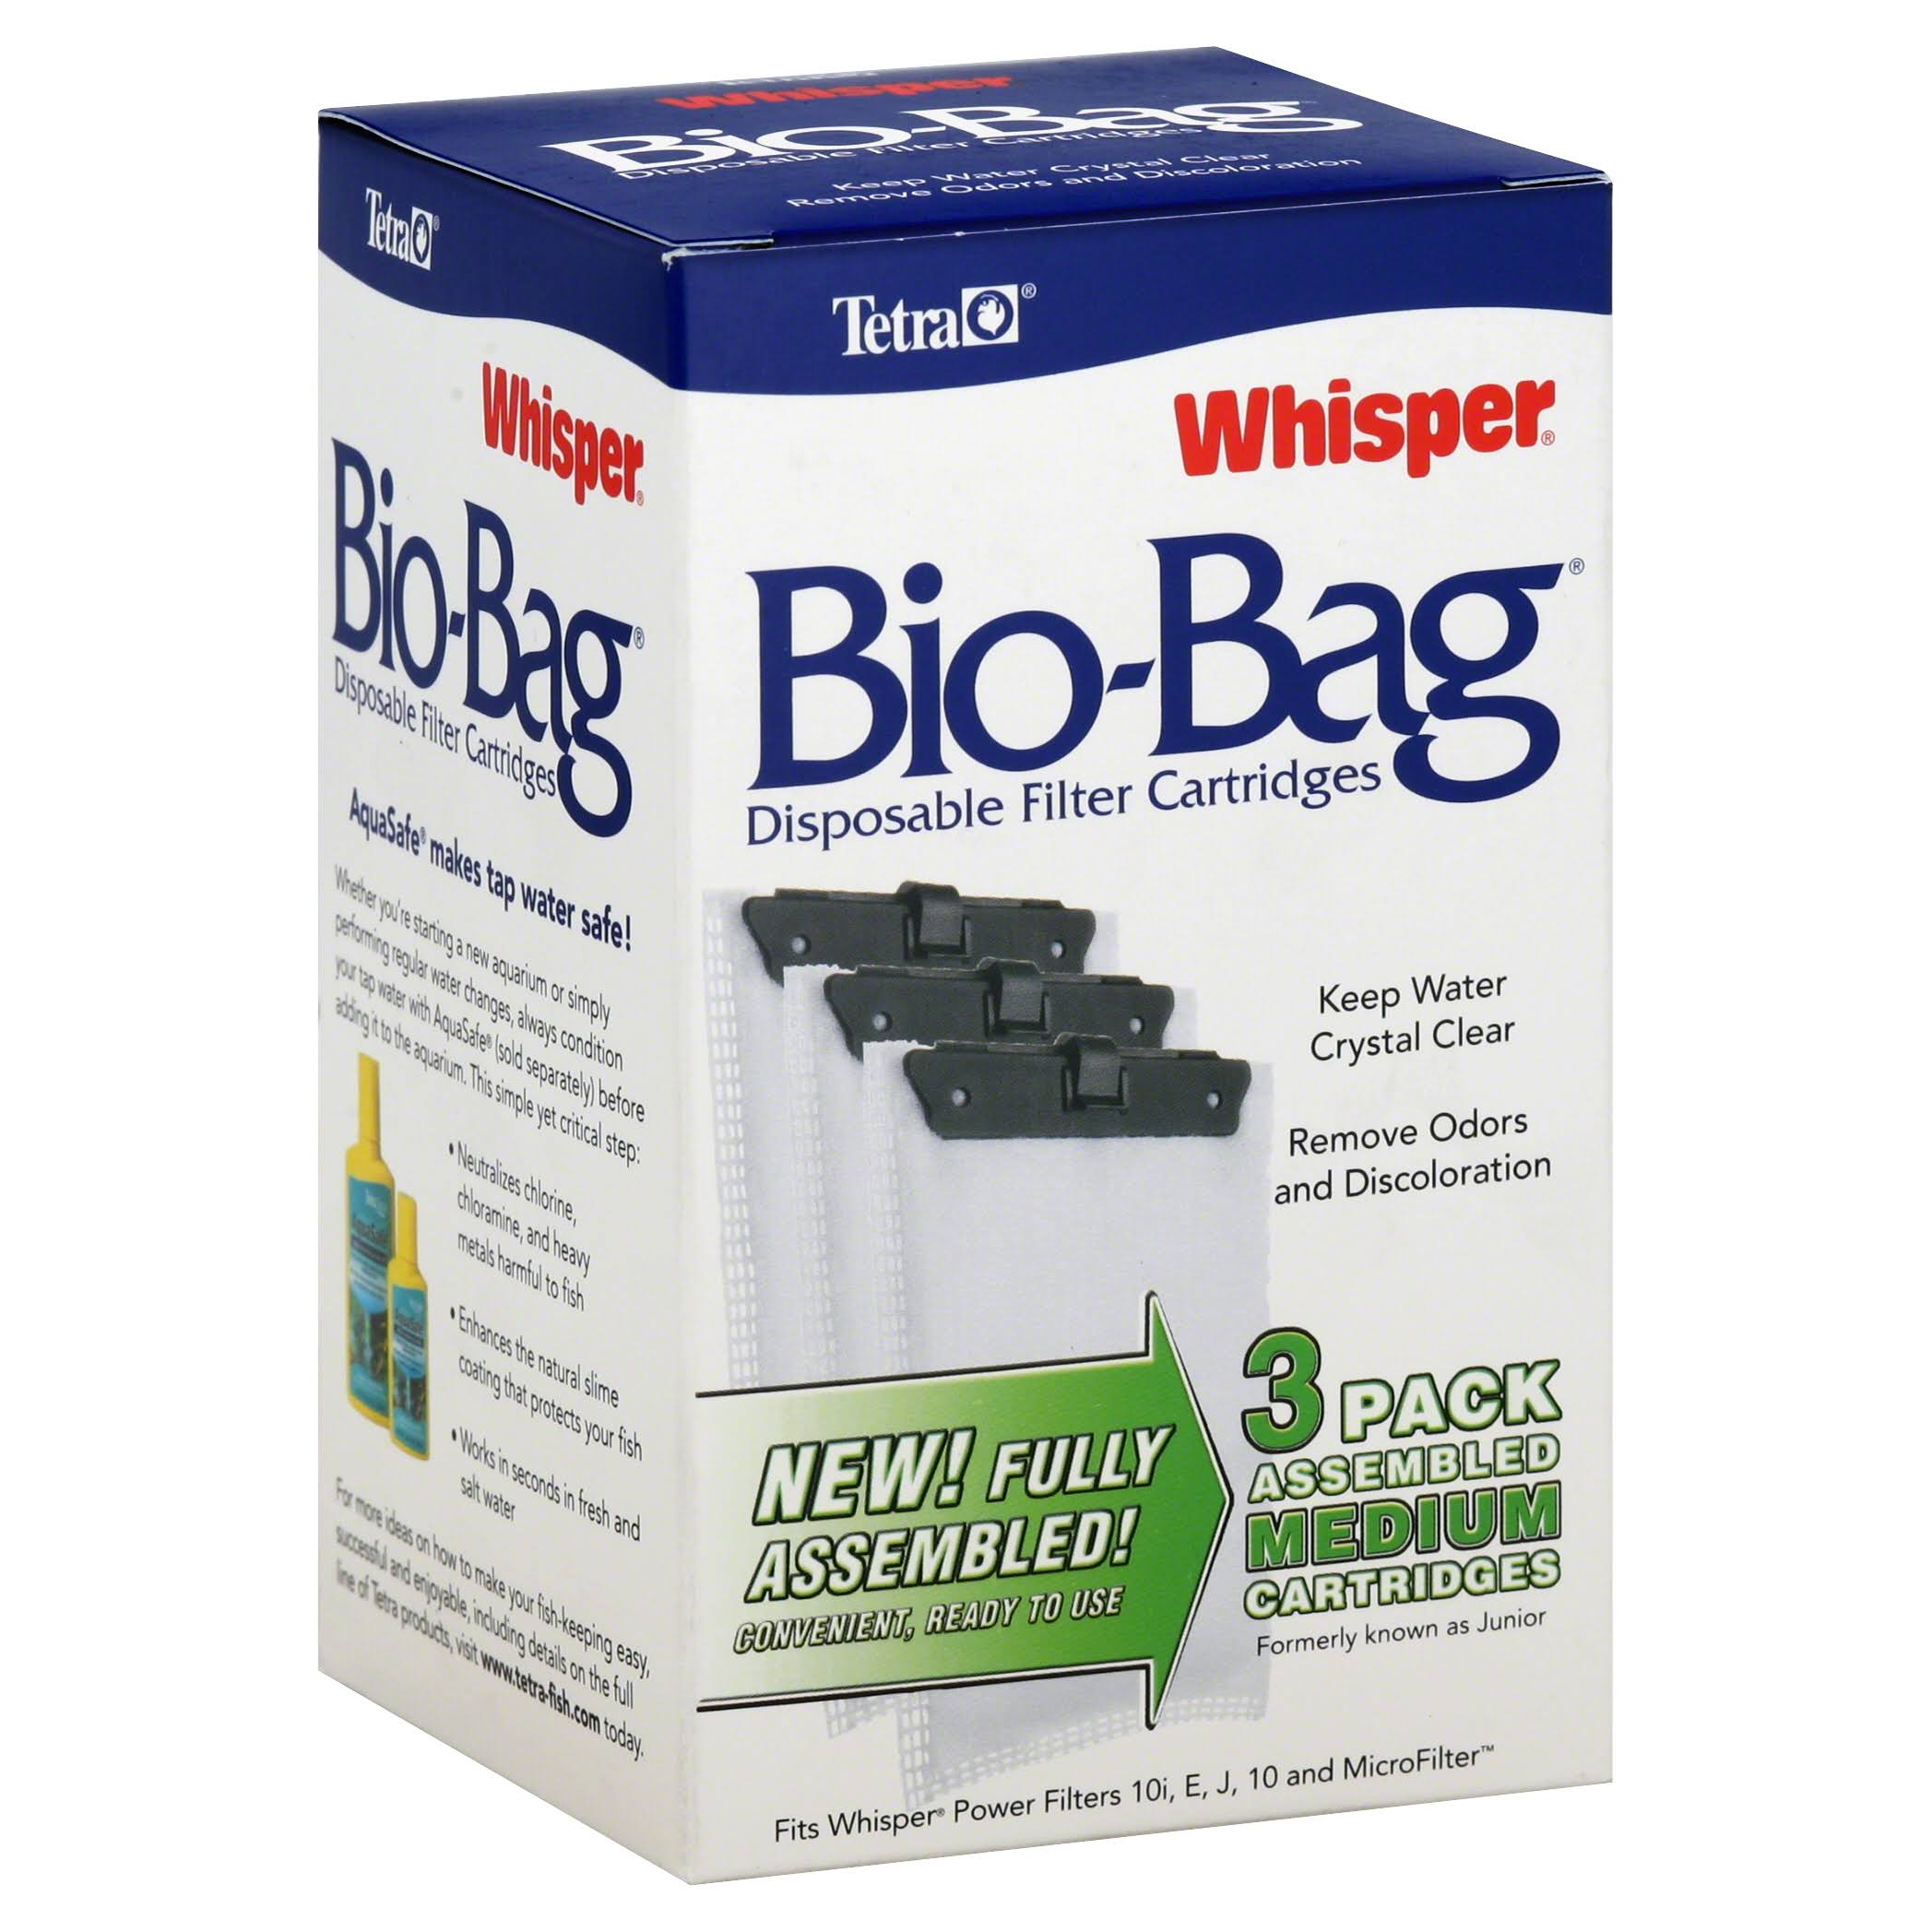 Tetra 26169 Whisper Bio-Bag Disposable Filter Cartridge - Medium, 3 pk